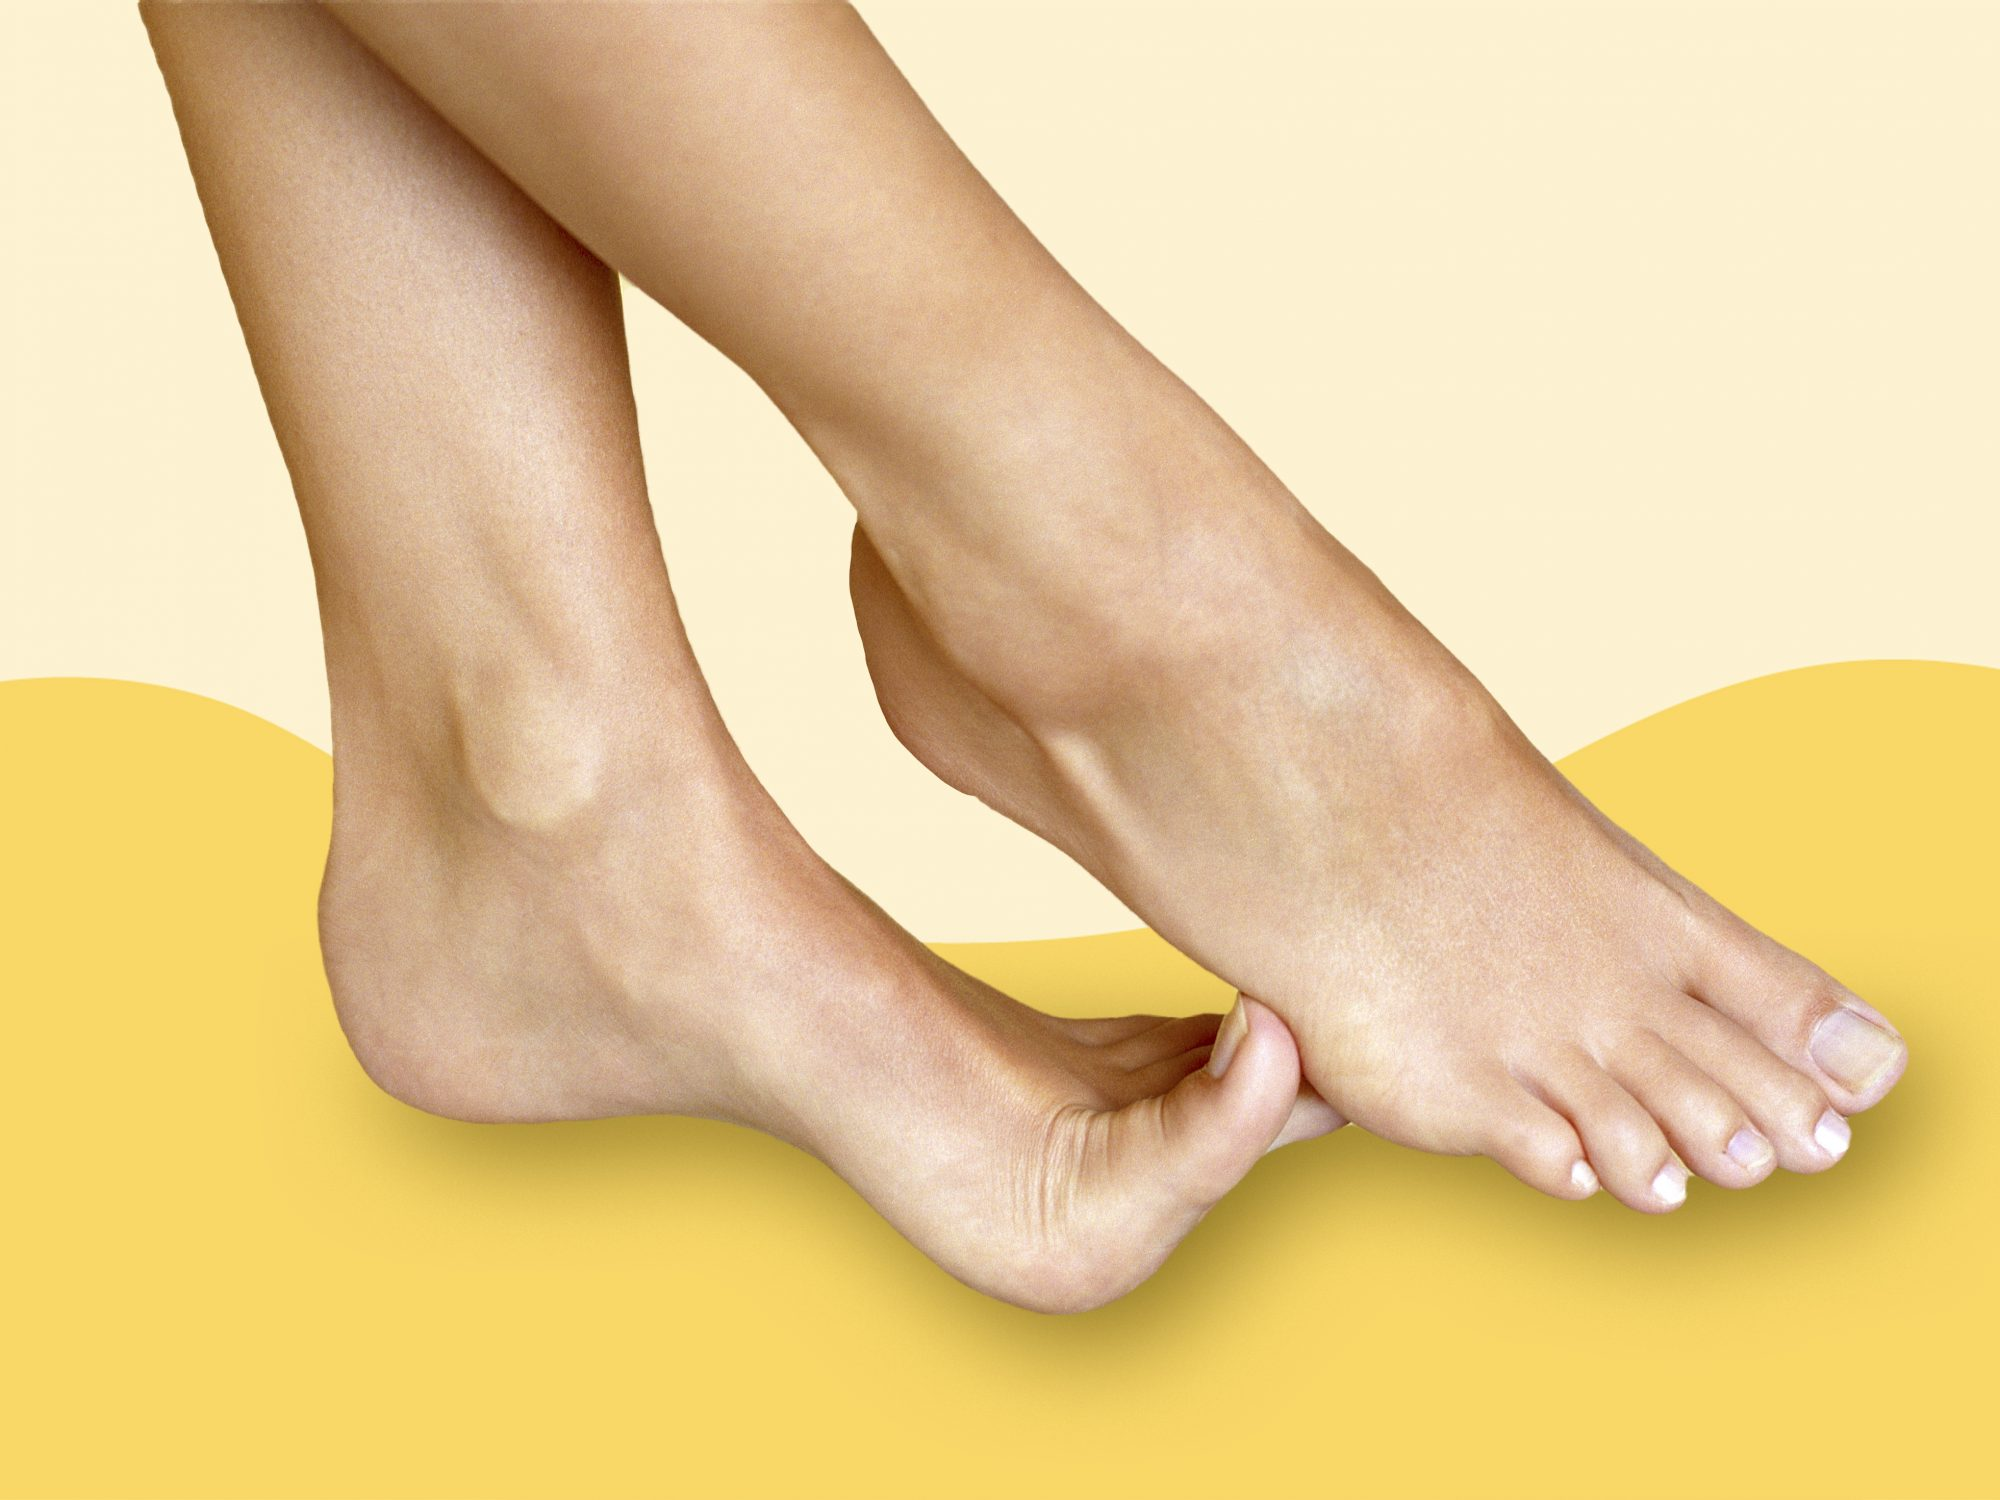 How to Relieve Toe Cramps: cramped foot on yellow background